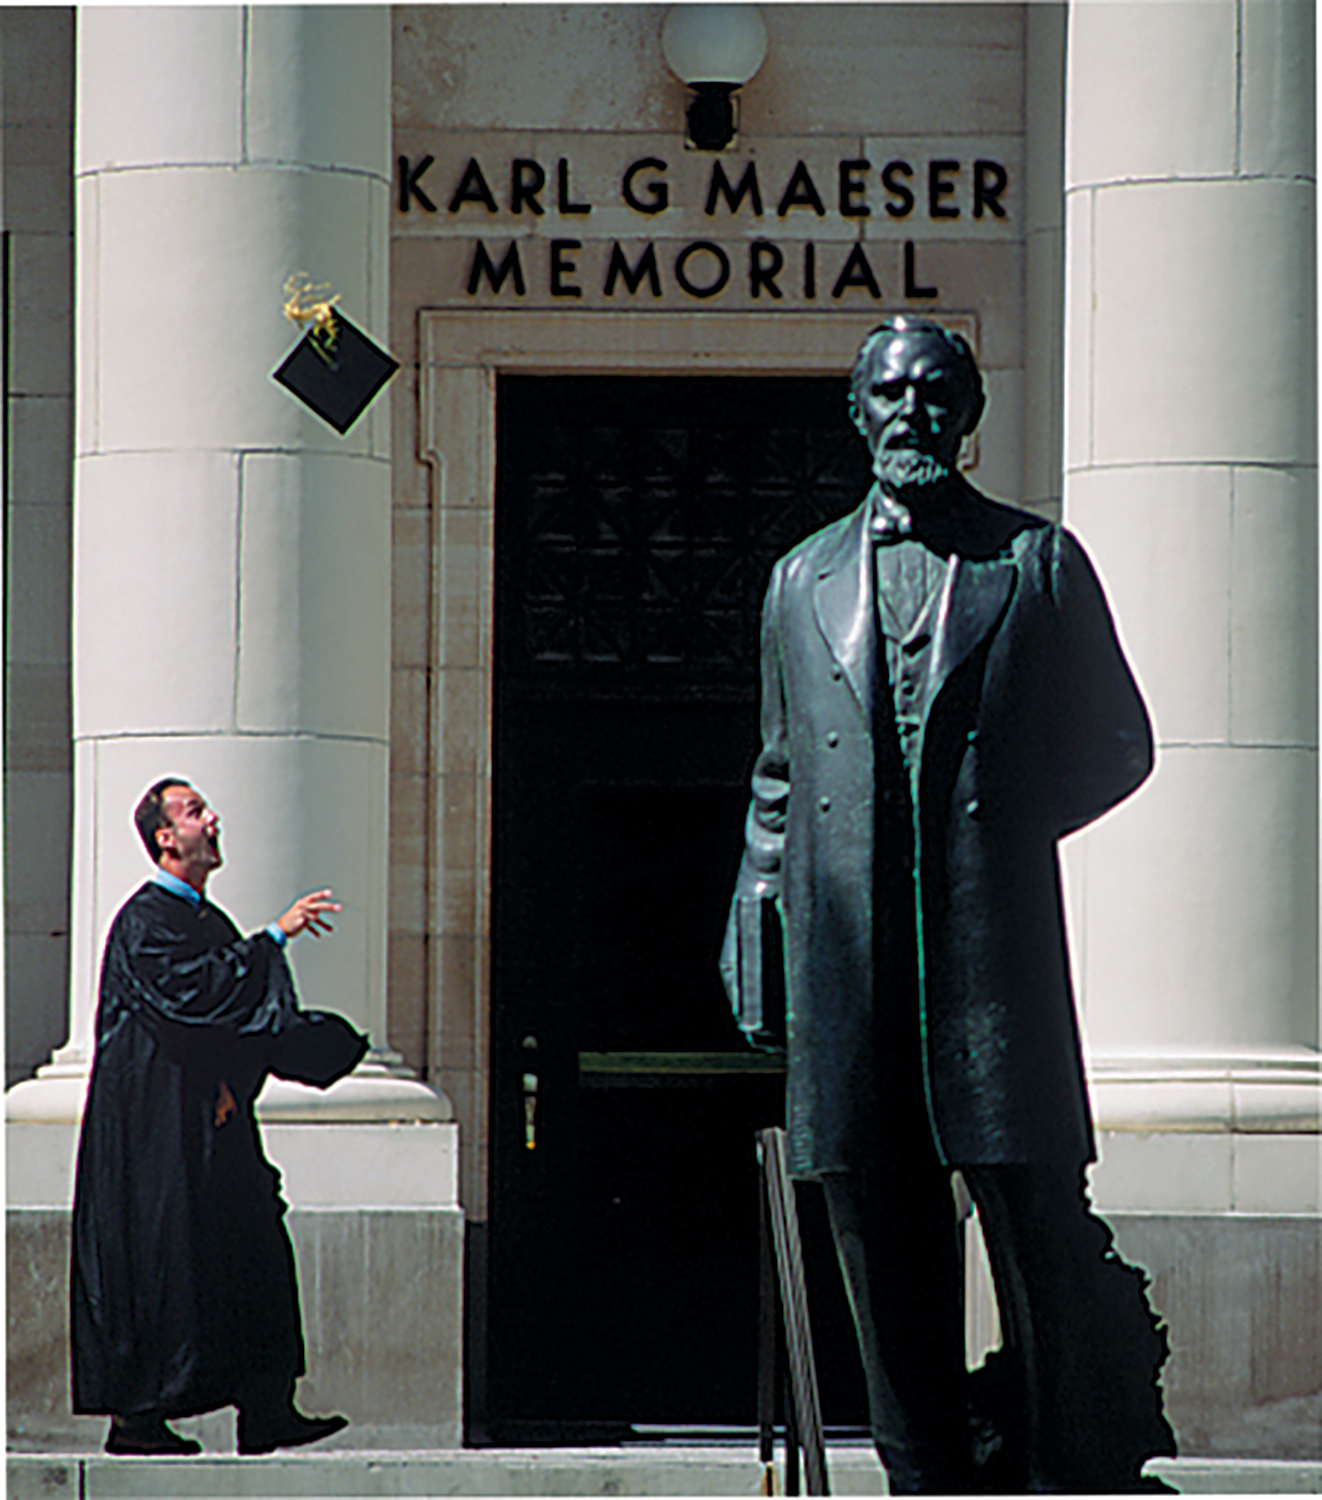 A graduate throwing his hat into the air next to a statue of Karl G. Maeser